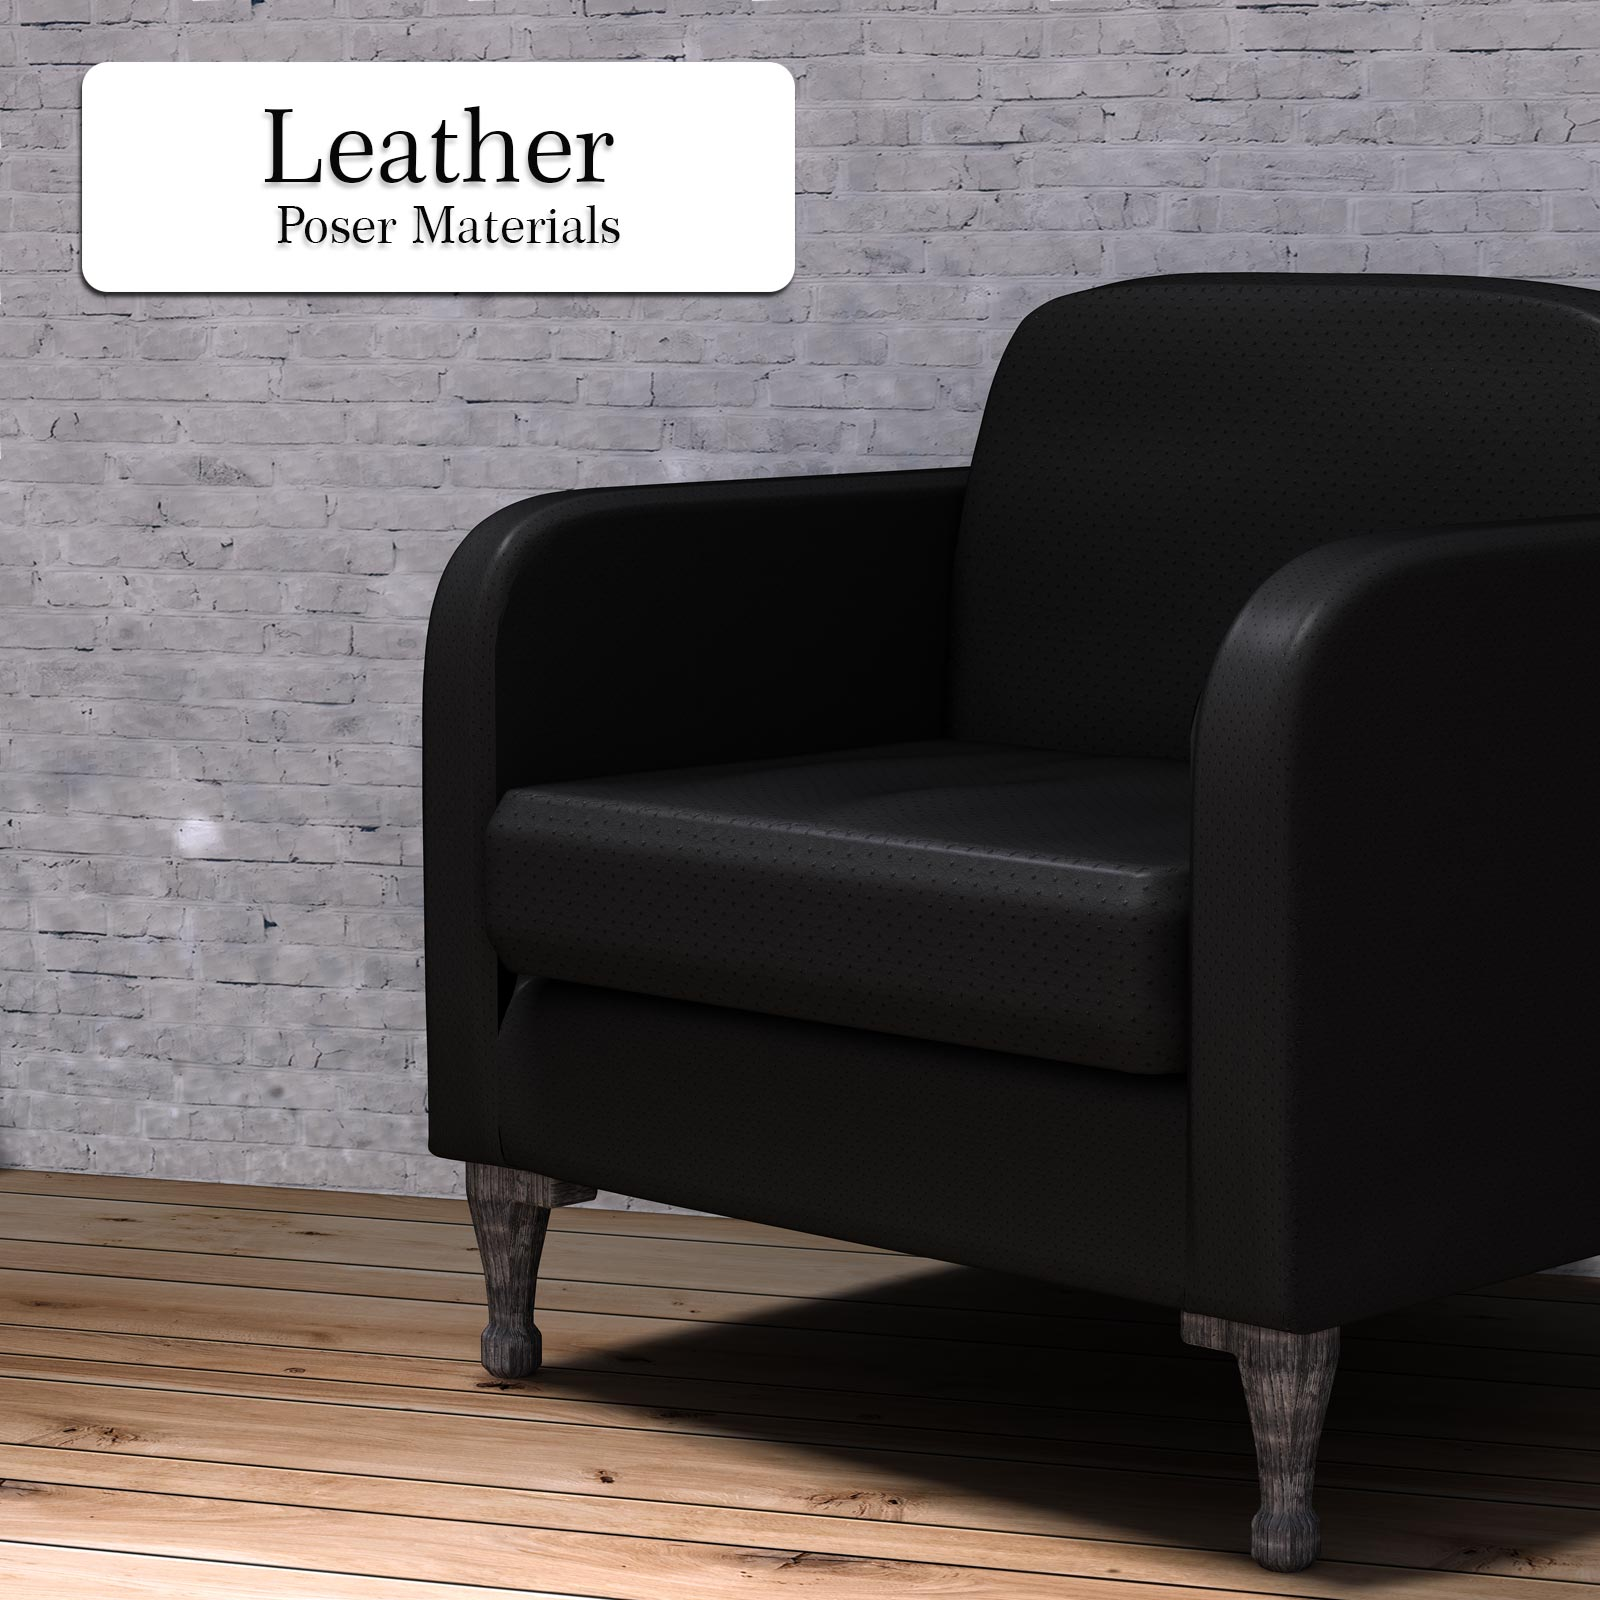 Leather :: Poser Materials